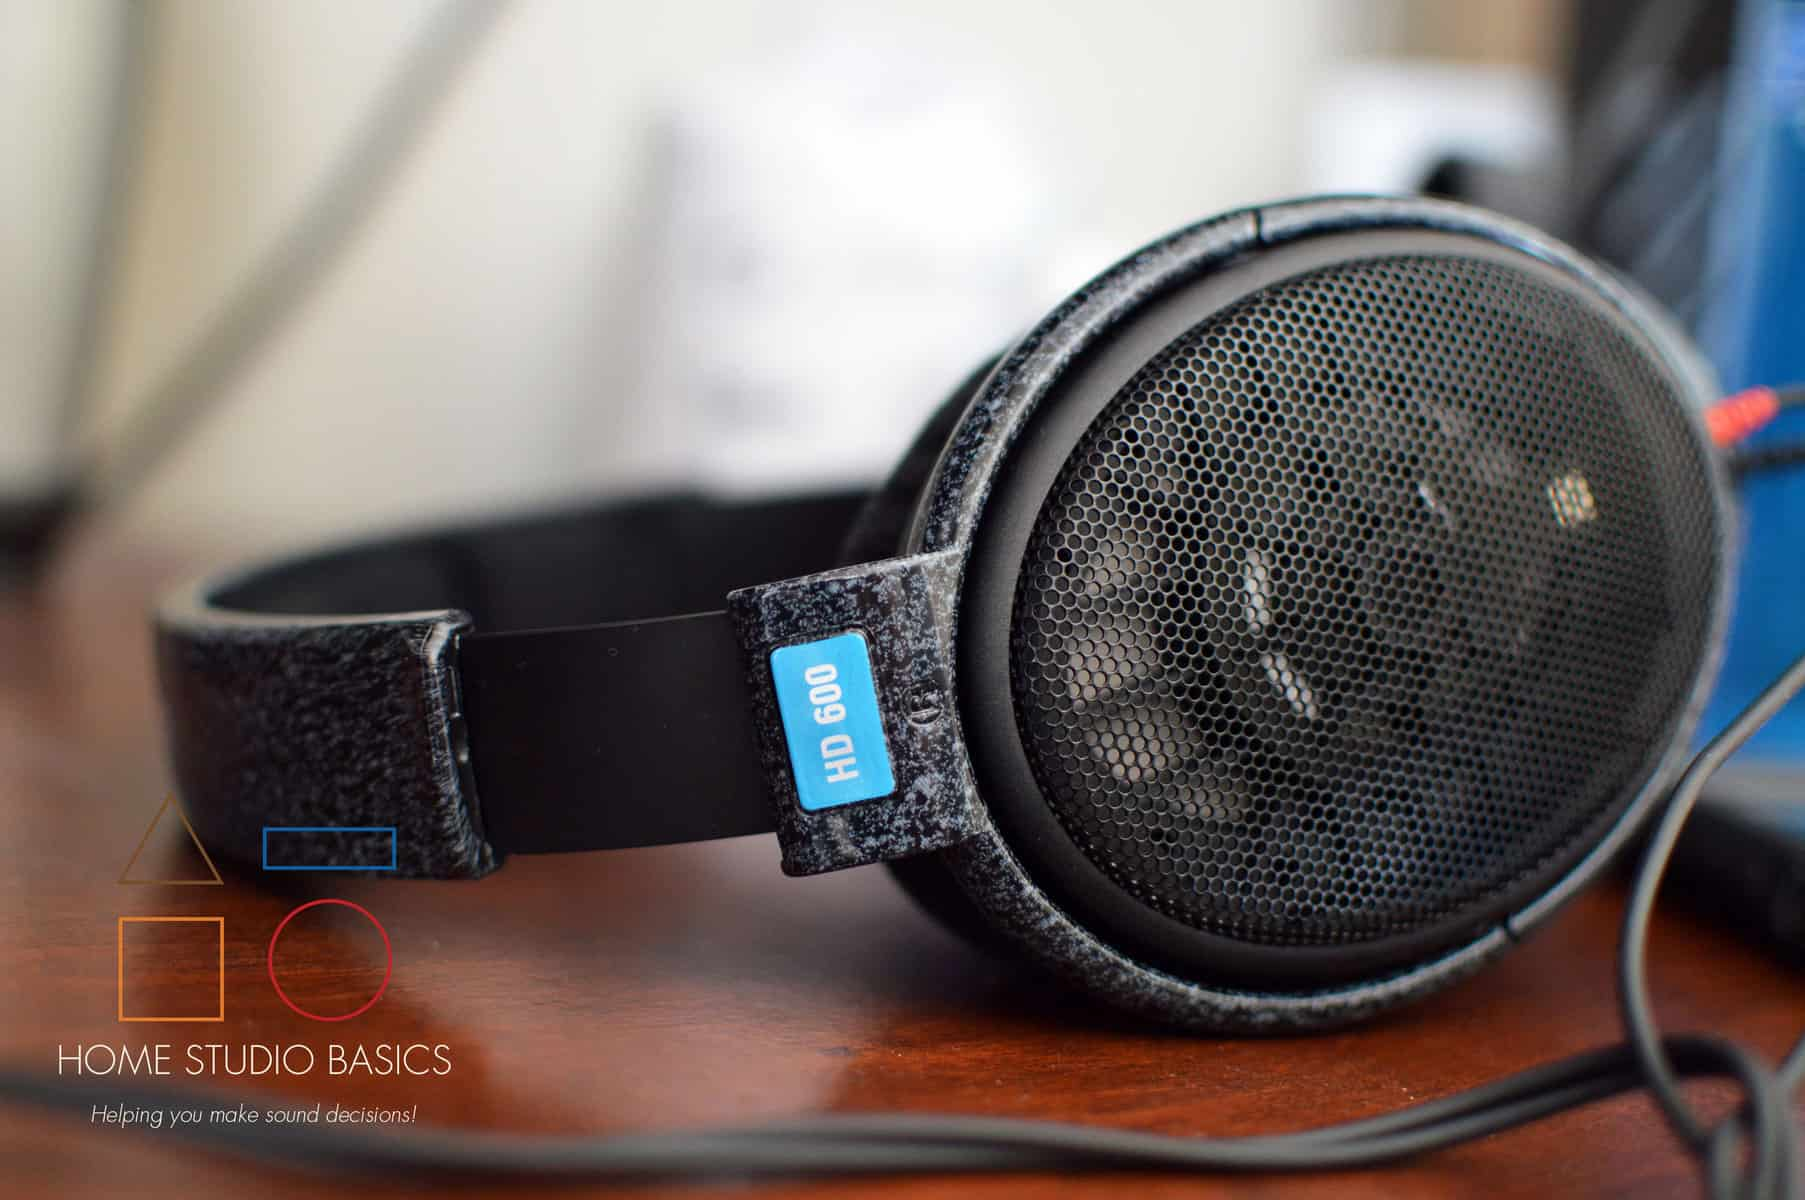 The Best Headphone Amp for the Sennheiser HD 600 and 650